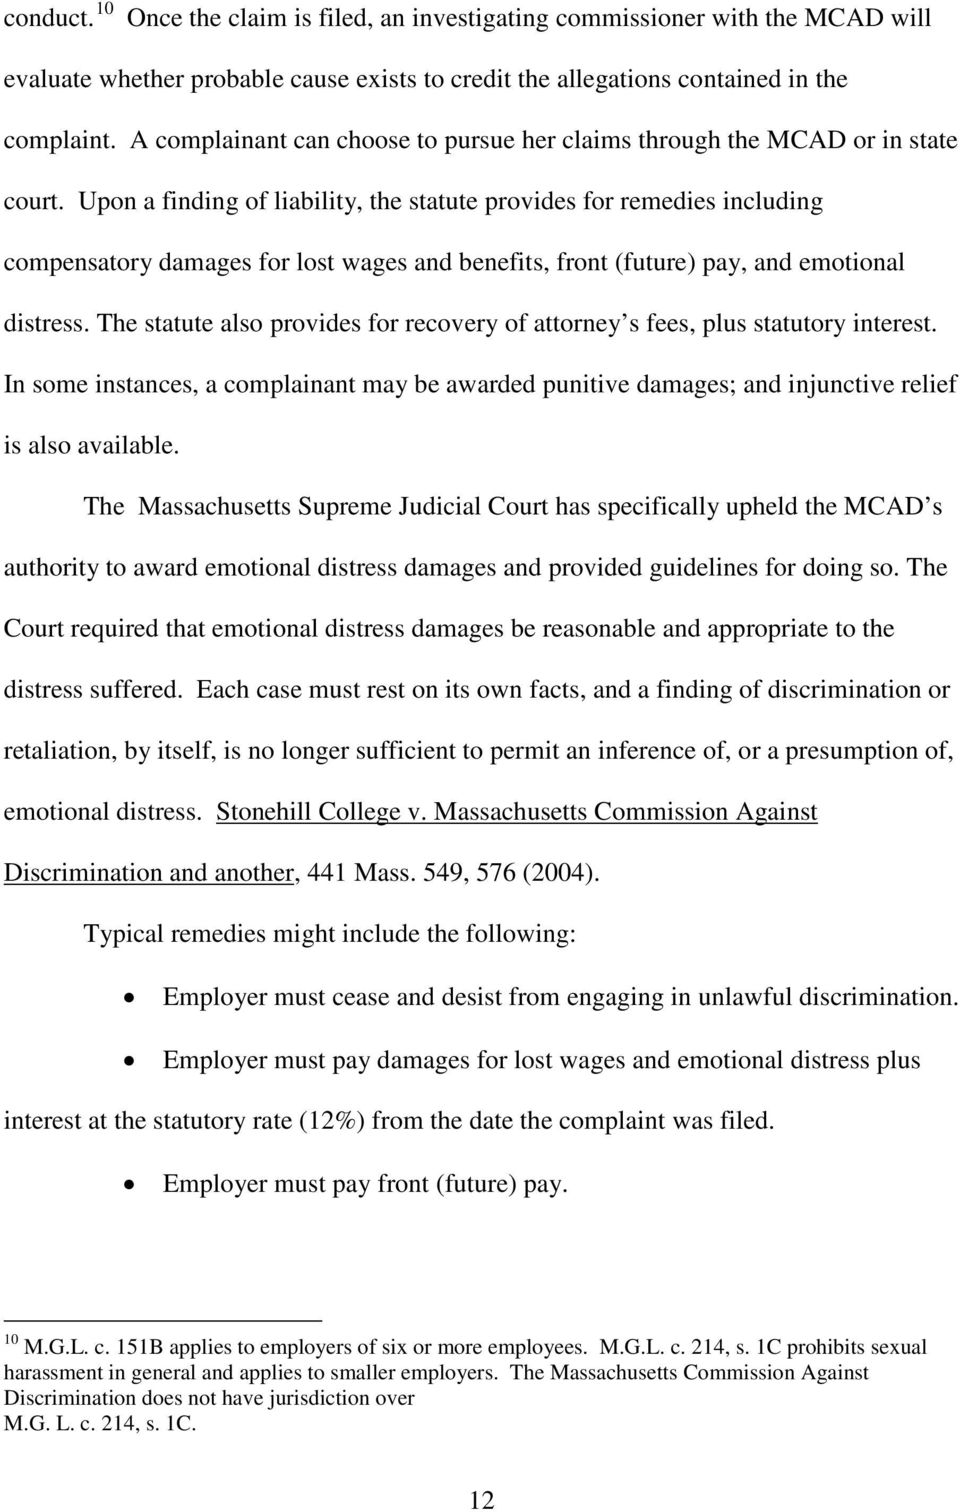 Compensatory damages for sexual harassment